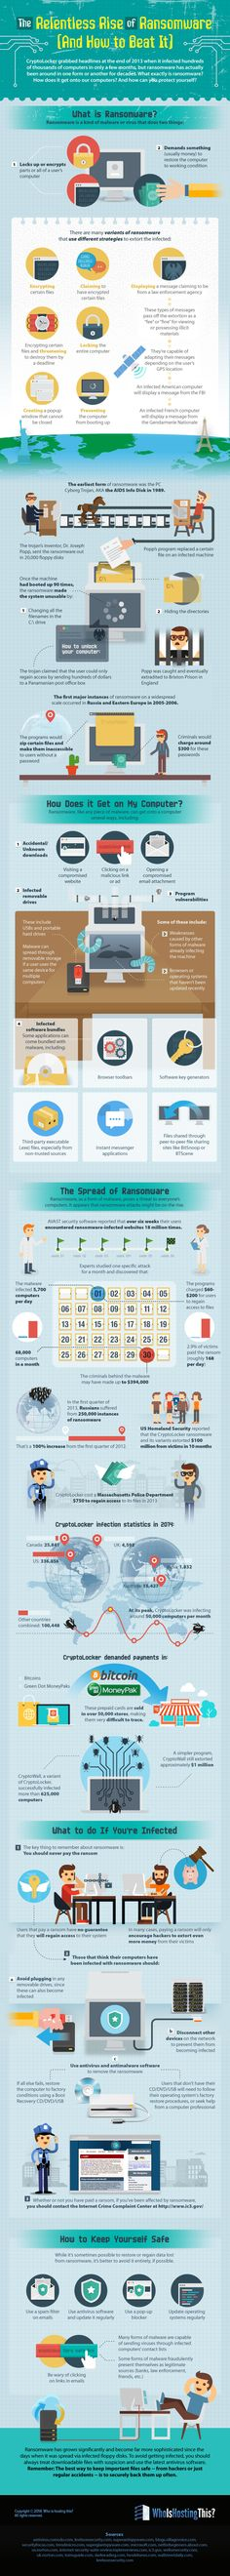 The Relentless Rise of Ransomware and How to Beat It #infographic #Ransomware #Internet #Virus #Malware